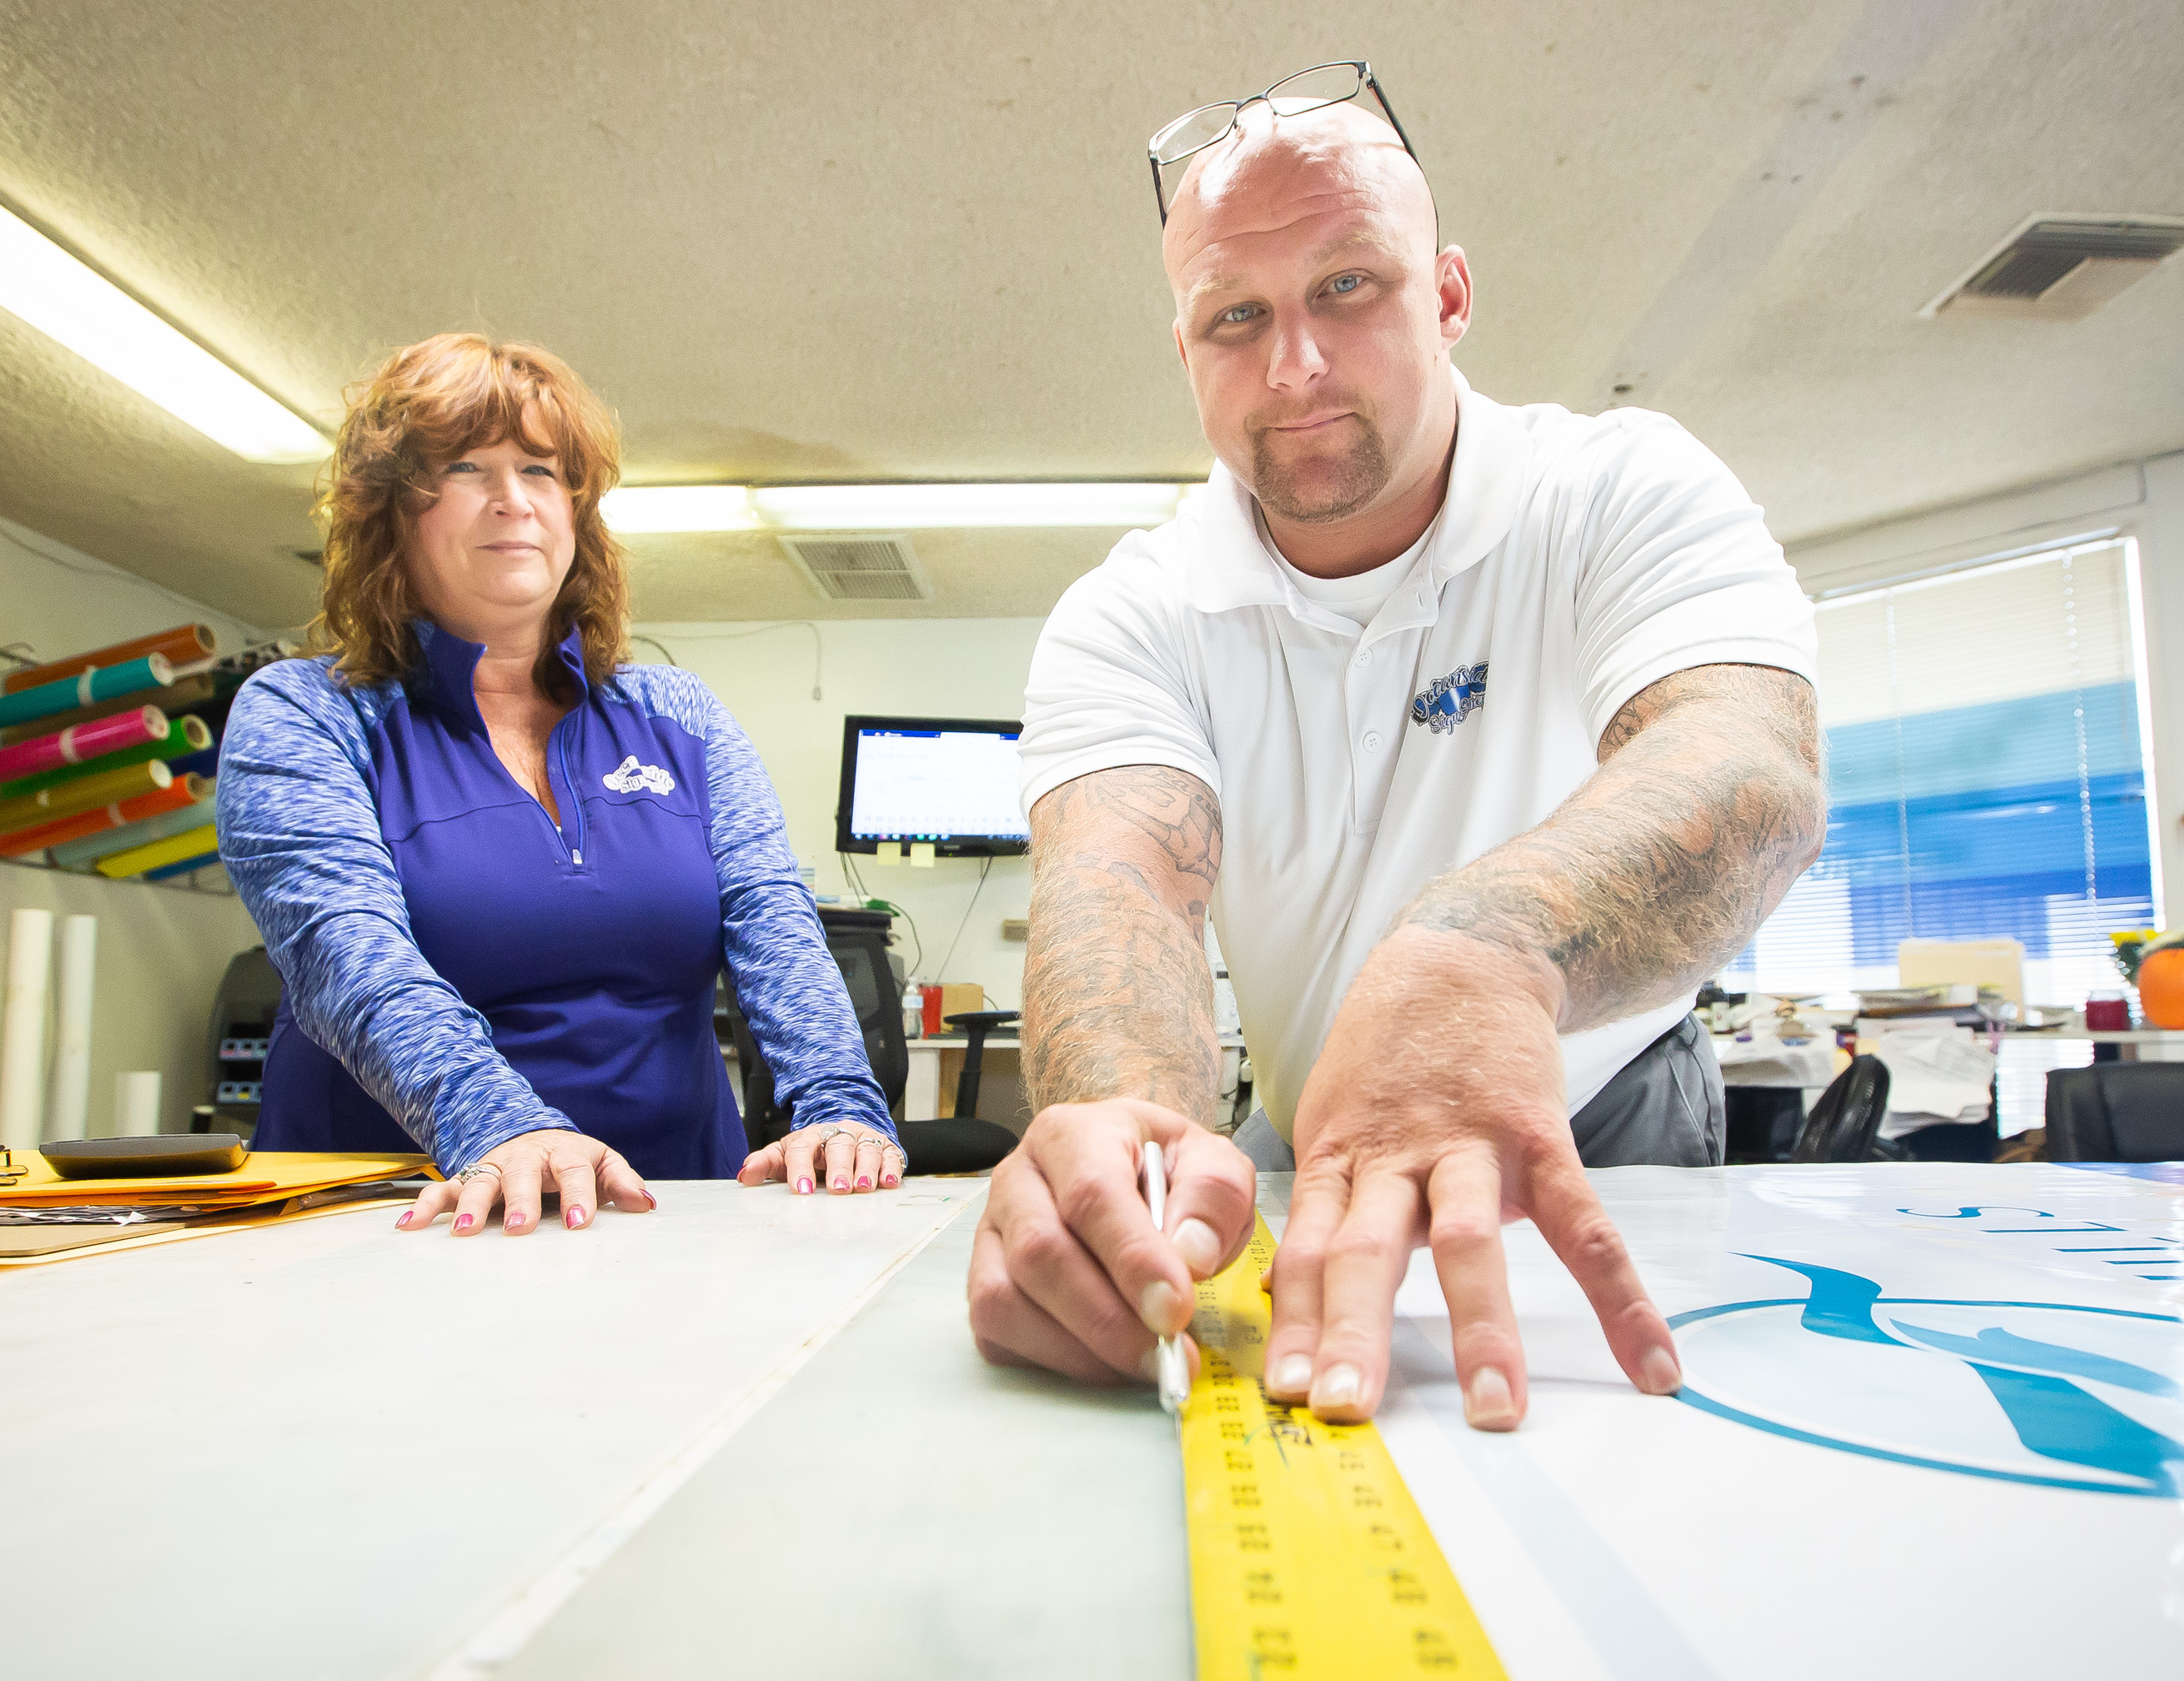 Oceanside Sign Shop selling after 29 years